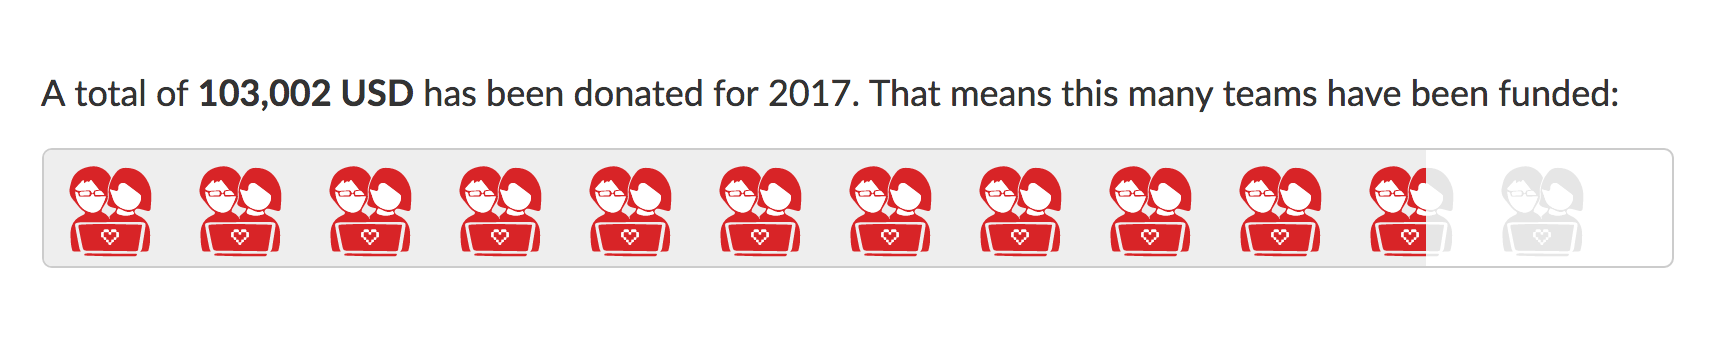 2017 donation progress bar